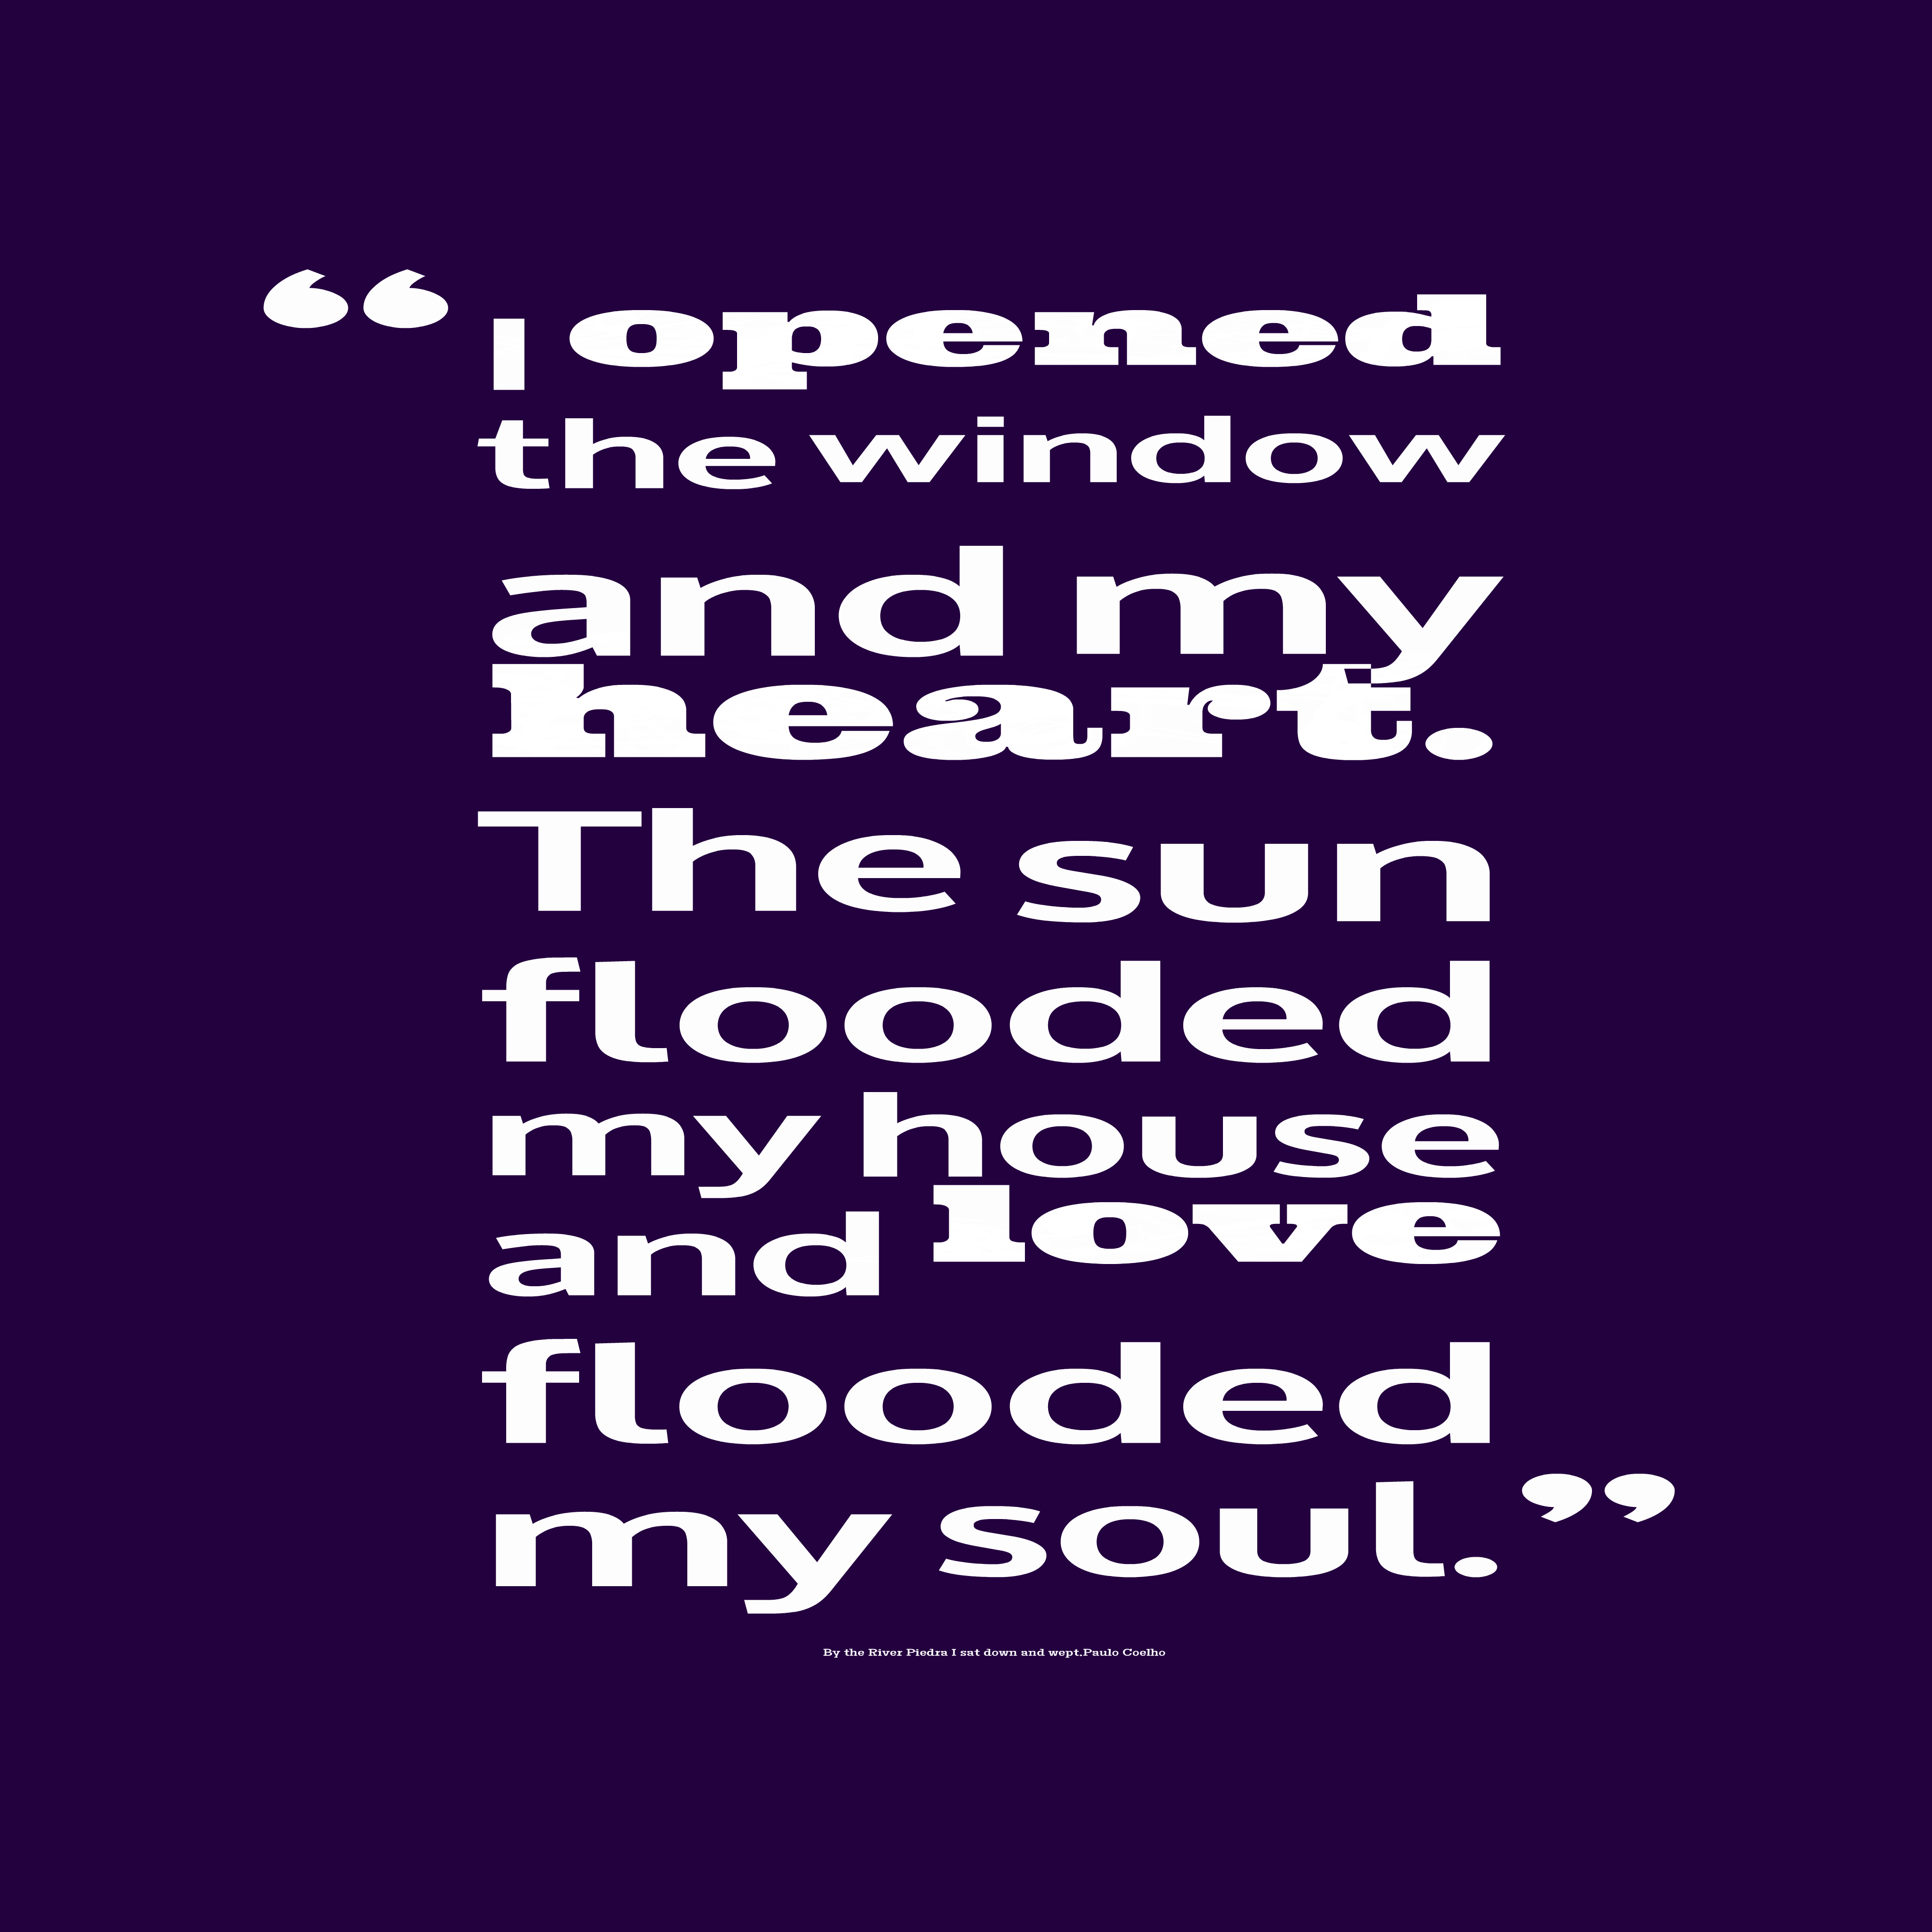 Quotes image of I opened the window and my heart. The sun flooded my house and love flooded my soul.